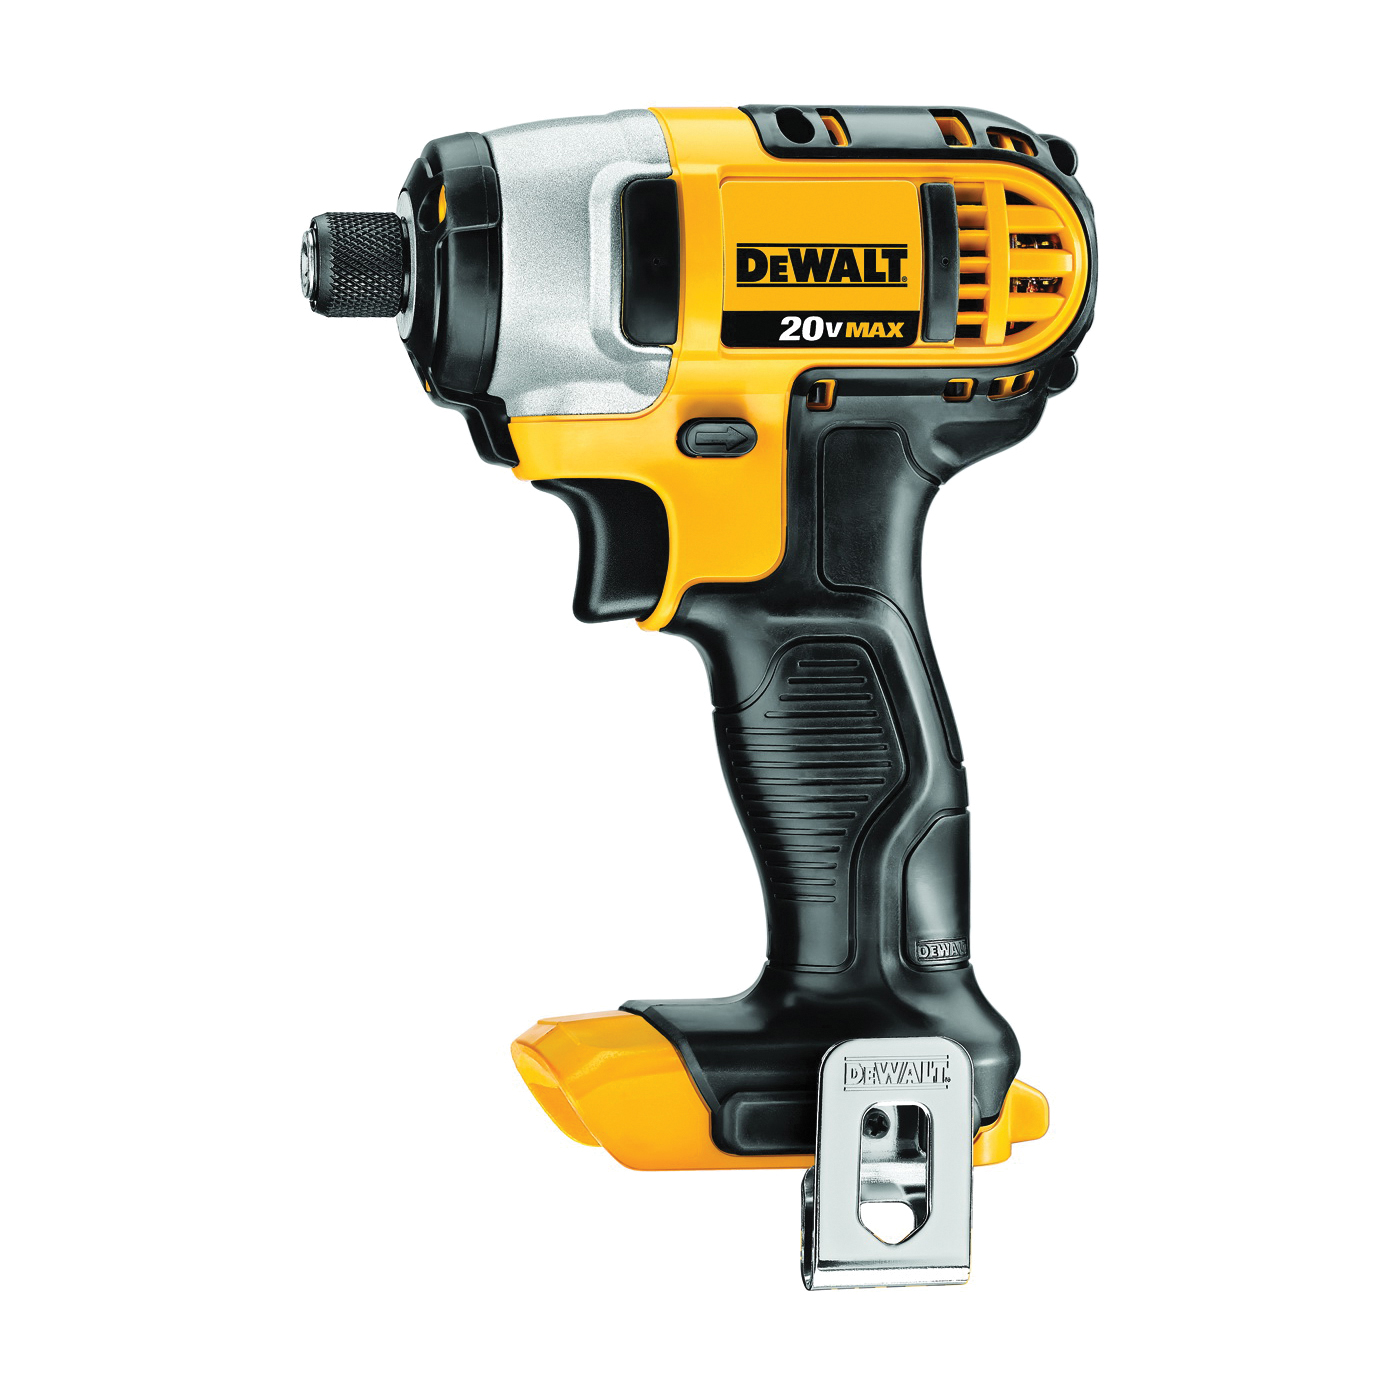 Picture of DeWALT DCF885B Impact Driver, Bare Tool, 20 V Battery, 3 Ah, 1/4 in Drive, Hex Drive, 3200 ipm IPM